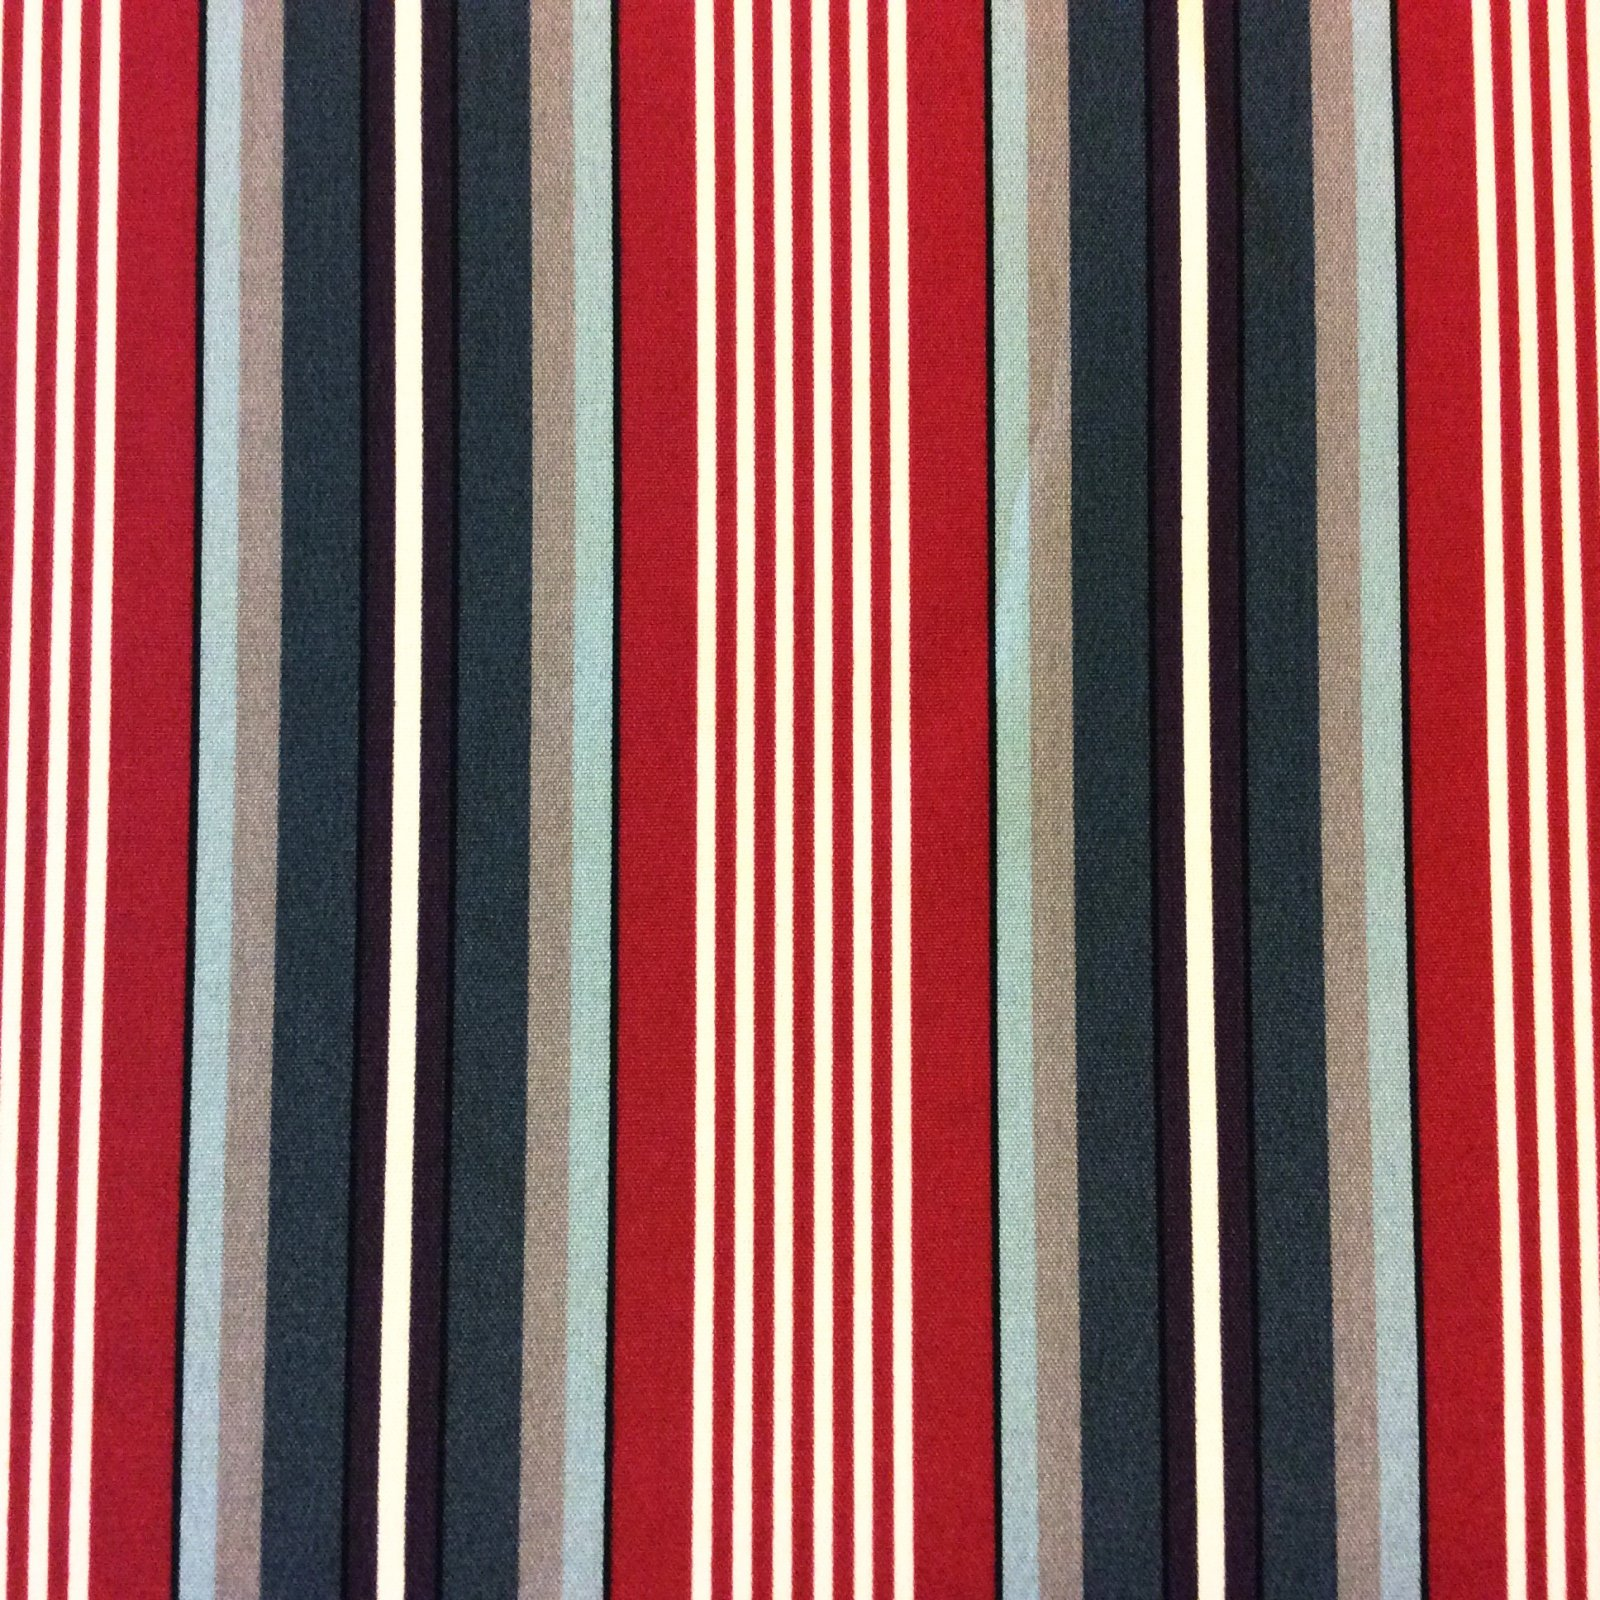 Classic Stripe Nautical Red White & Blue Stripe Geo Striped Patio Awning Indoor Outdoor Fabric SRI003